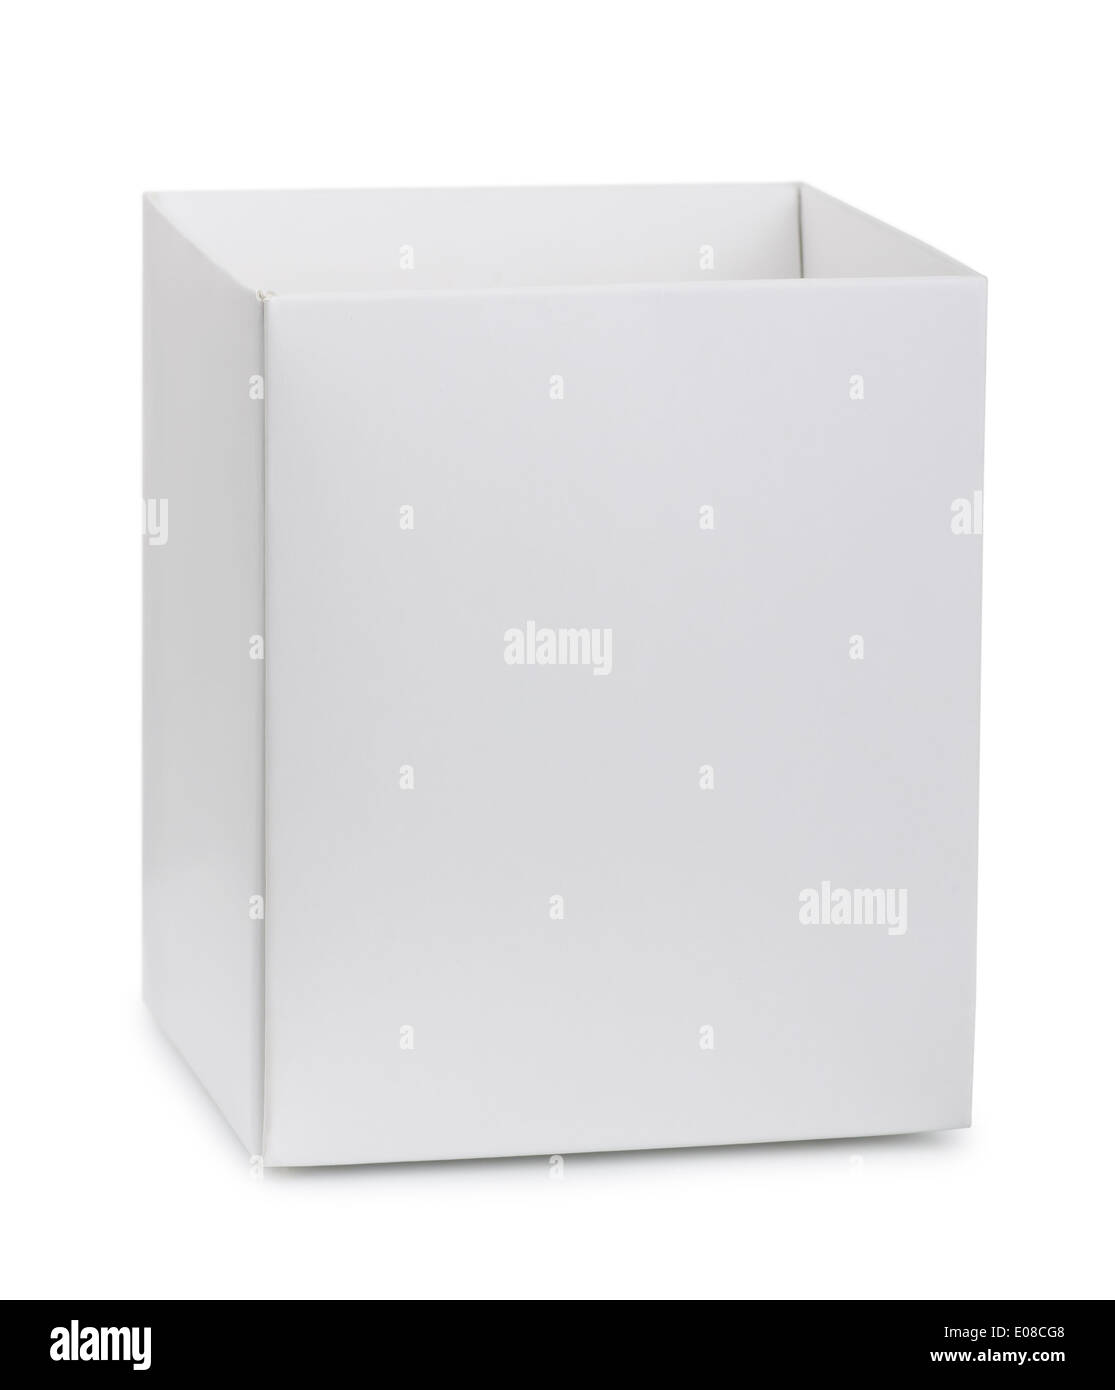 Ouvert blanc isolated on white Photo Stock